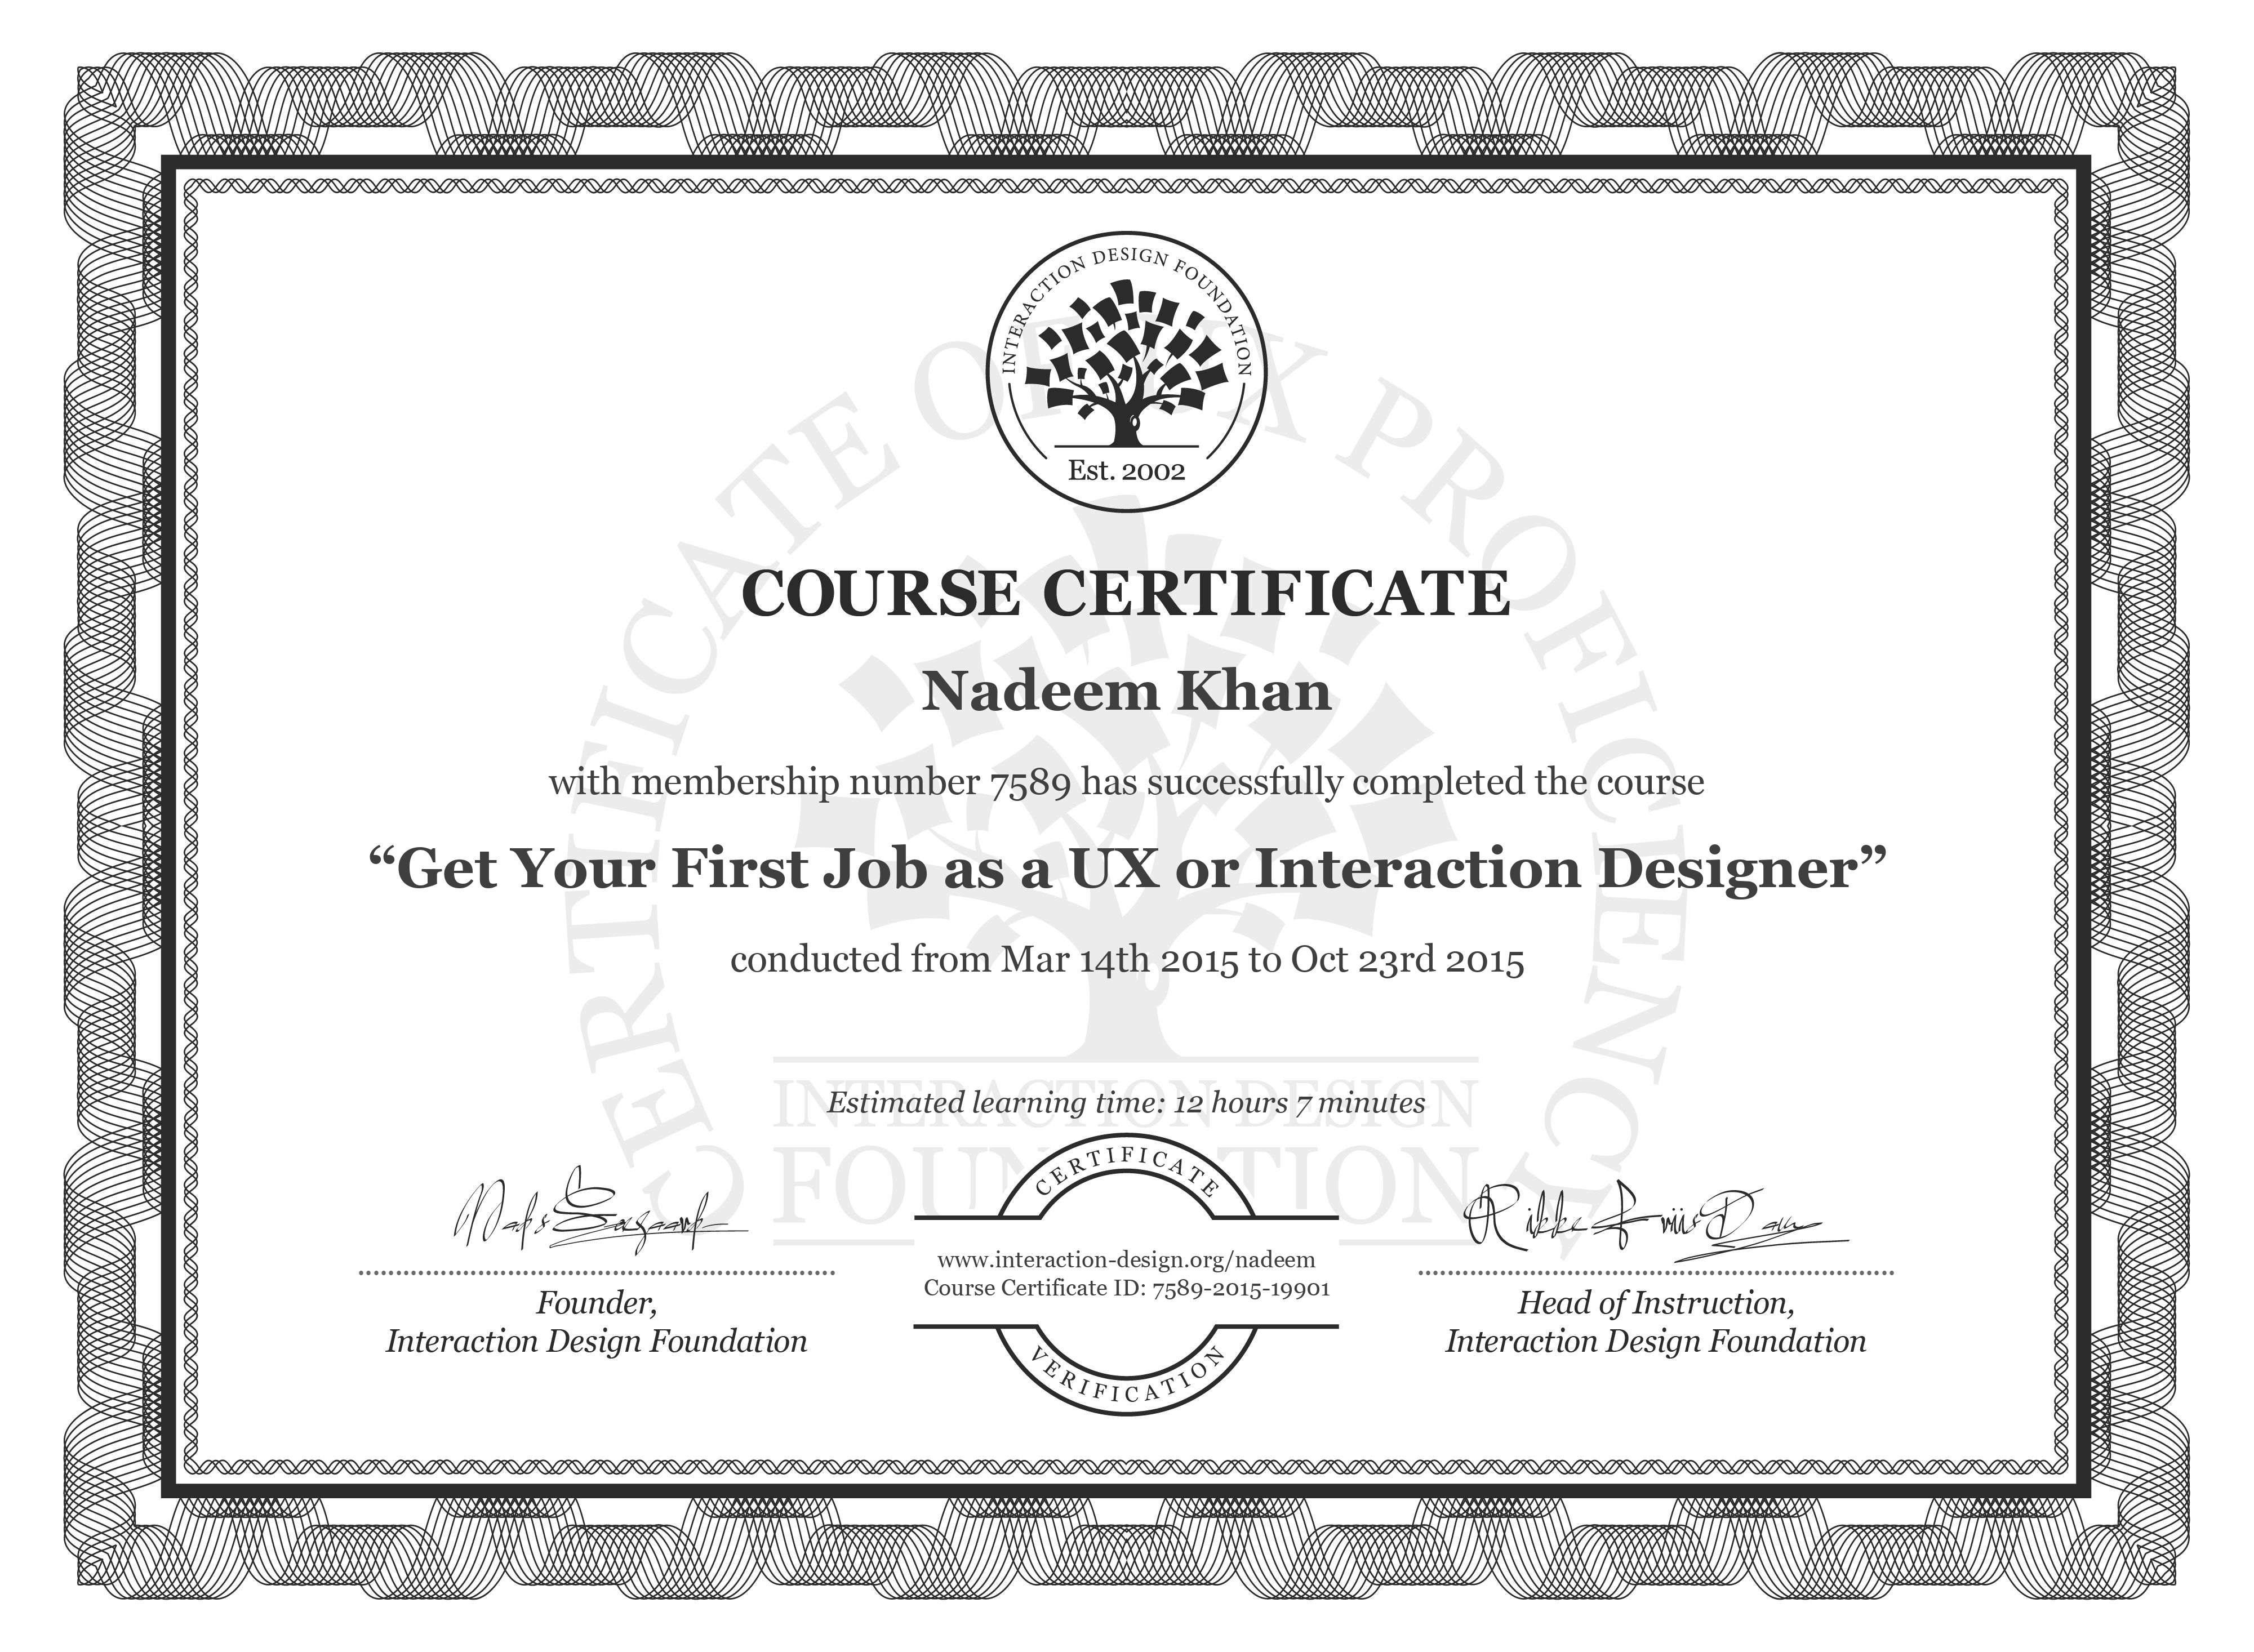 Nadeem Khan's Course Certificate: Get Your First Job as a UX or Interaction Designer